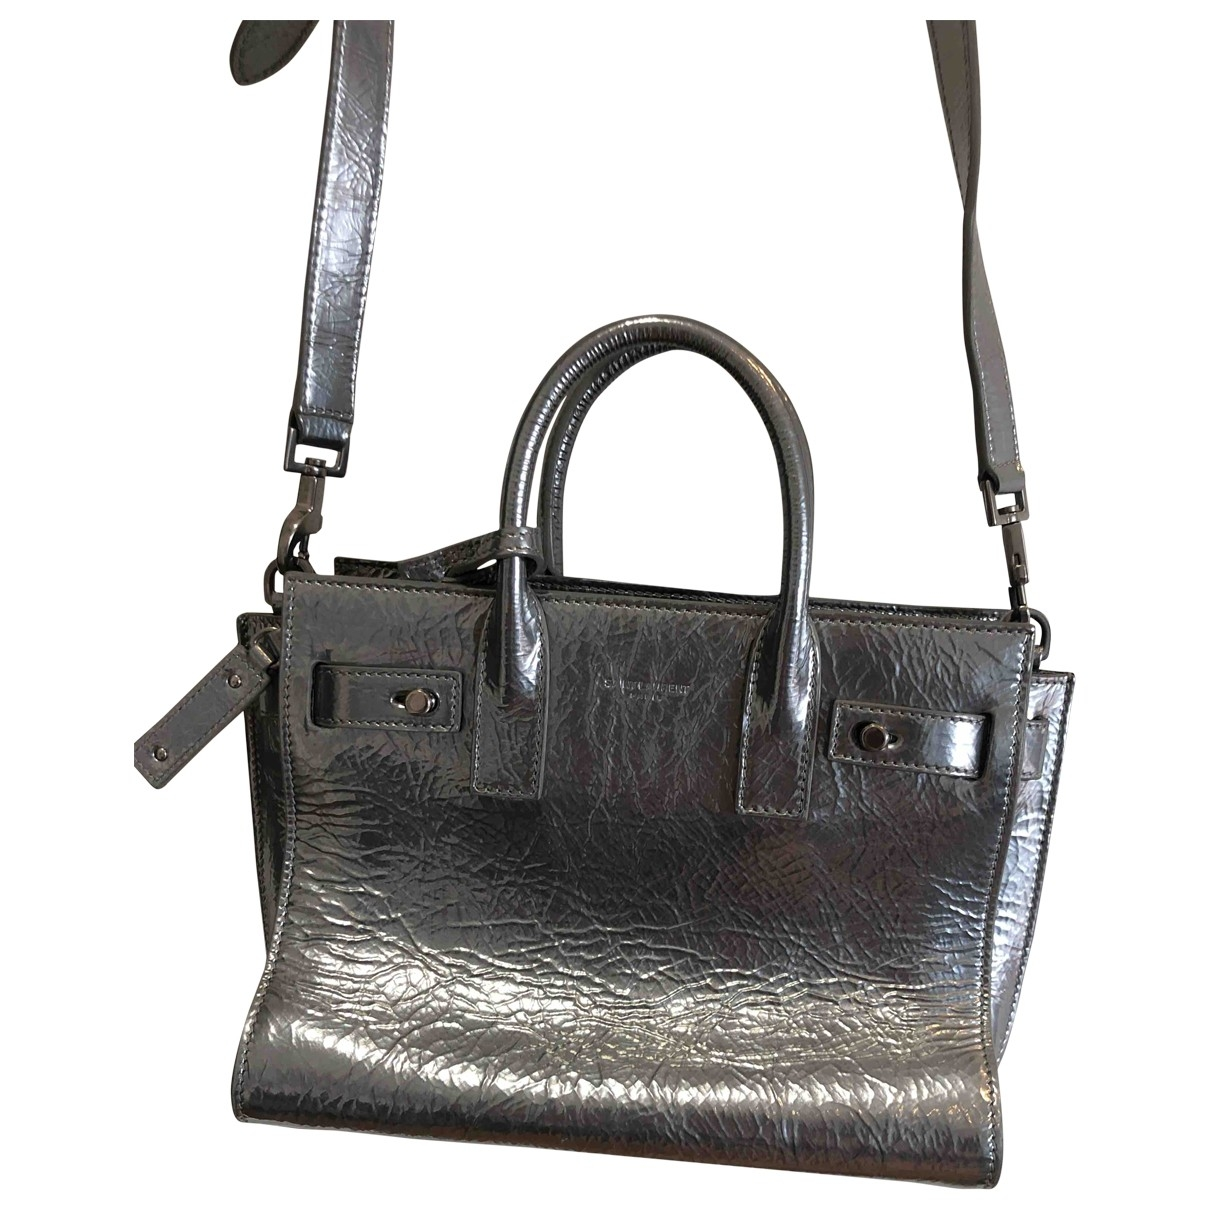 Saint Laurent Sac de Jour Handtasche in  Silber Lackleder